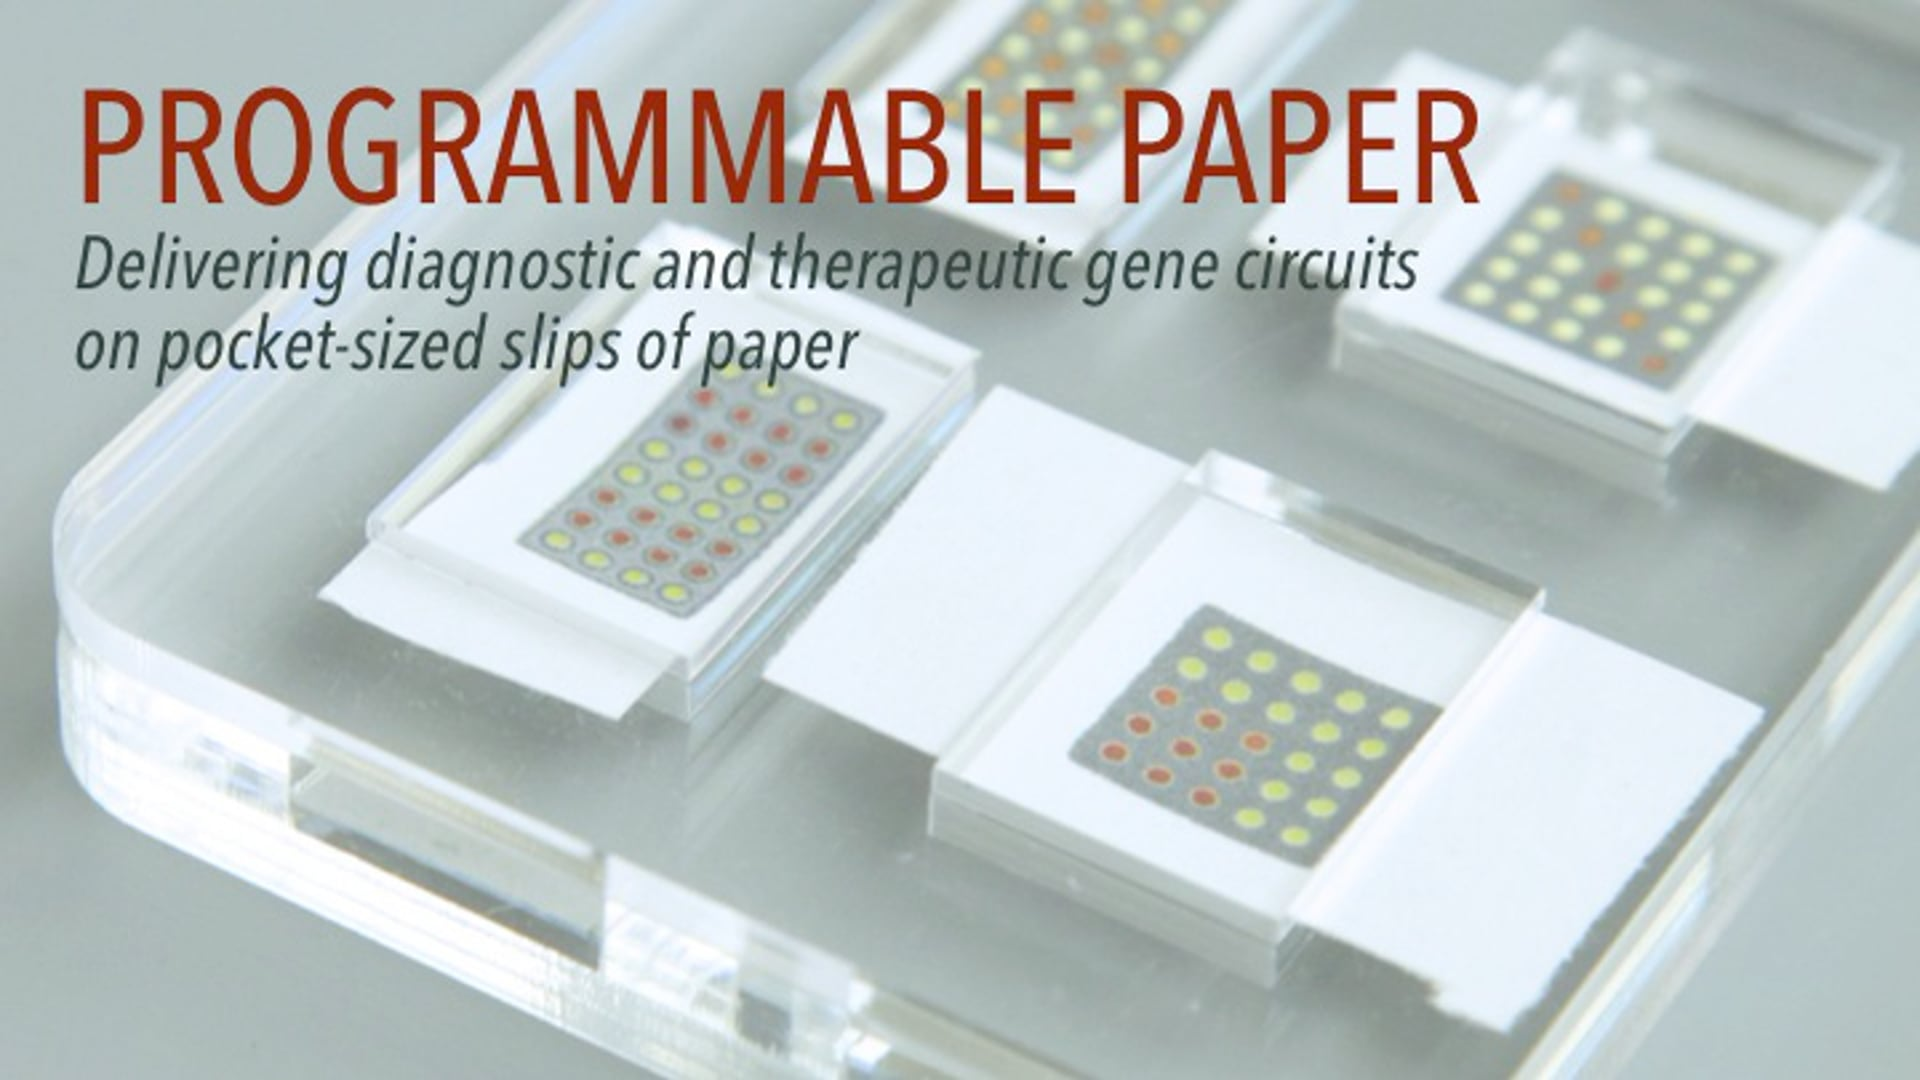 Programmable Paper: Advances in Synthetic Biology